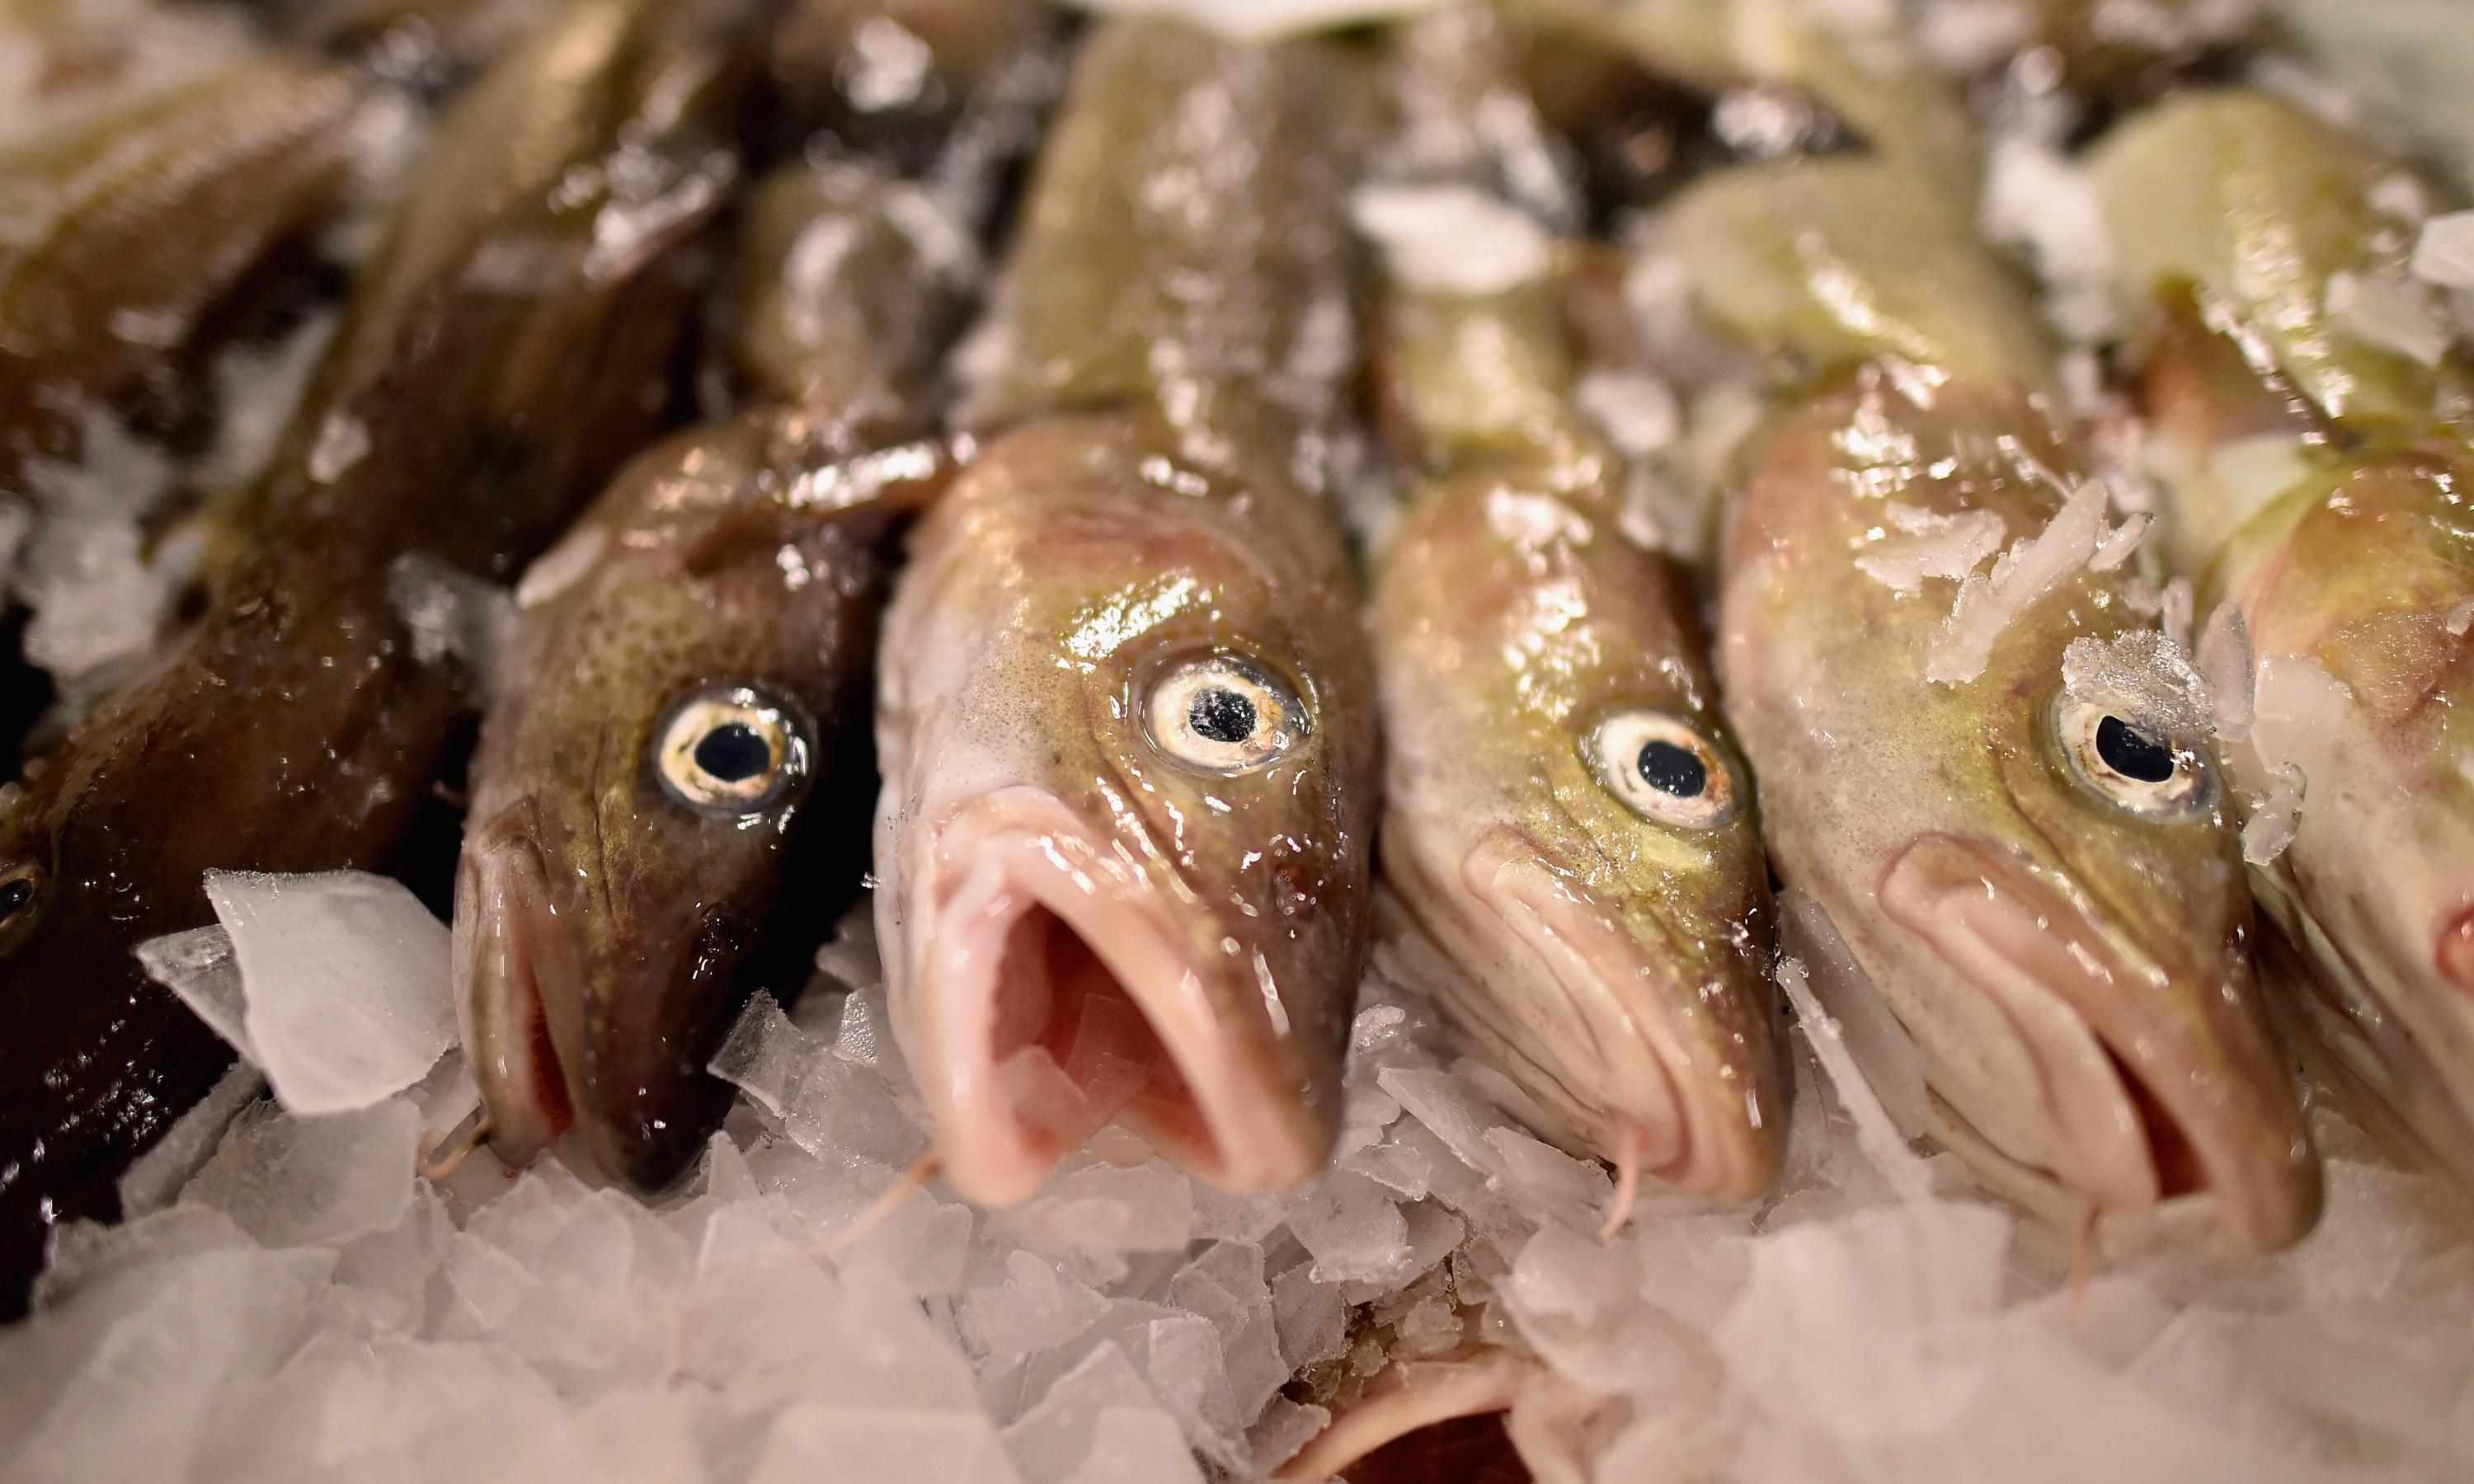 North Sea cod at critically low levels, study warns